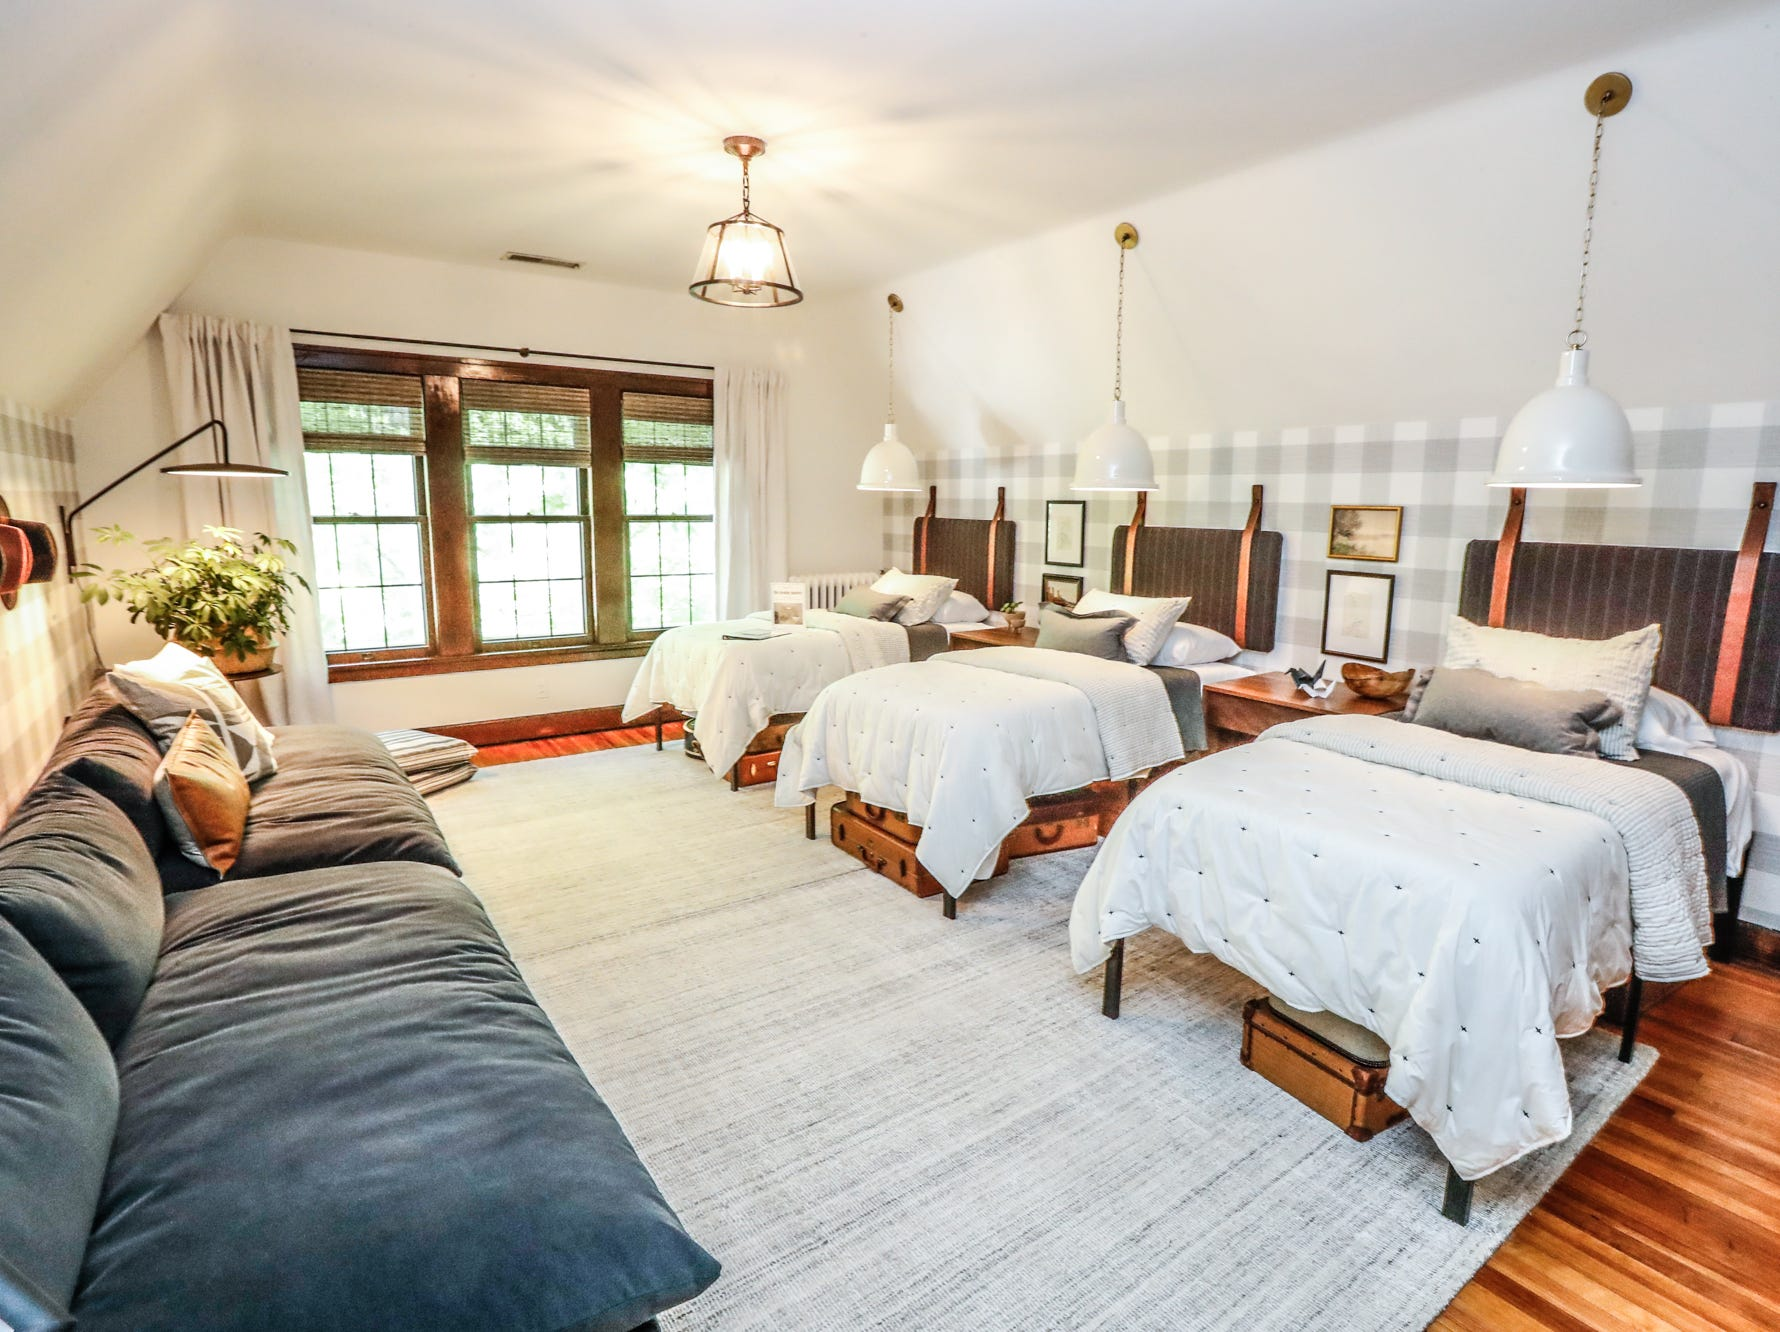 """The """"Sleeping Quarters"""", designed by Sunshine Brooks, Emily Pribble, and Jennifer Finn, of Shine Design, inside The 58th annual St. Margaret's Hospital Guild Decorators' Show House and Gardens, located at 4160 Washington Blvd., Indianapolis, on Wednesday, May 8, 2019."""